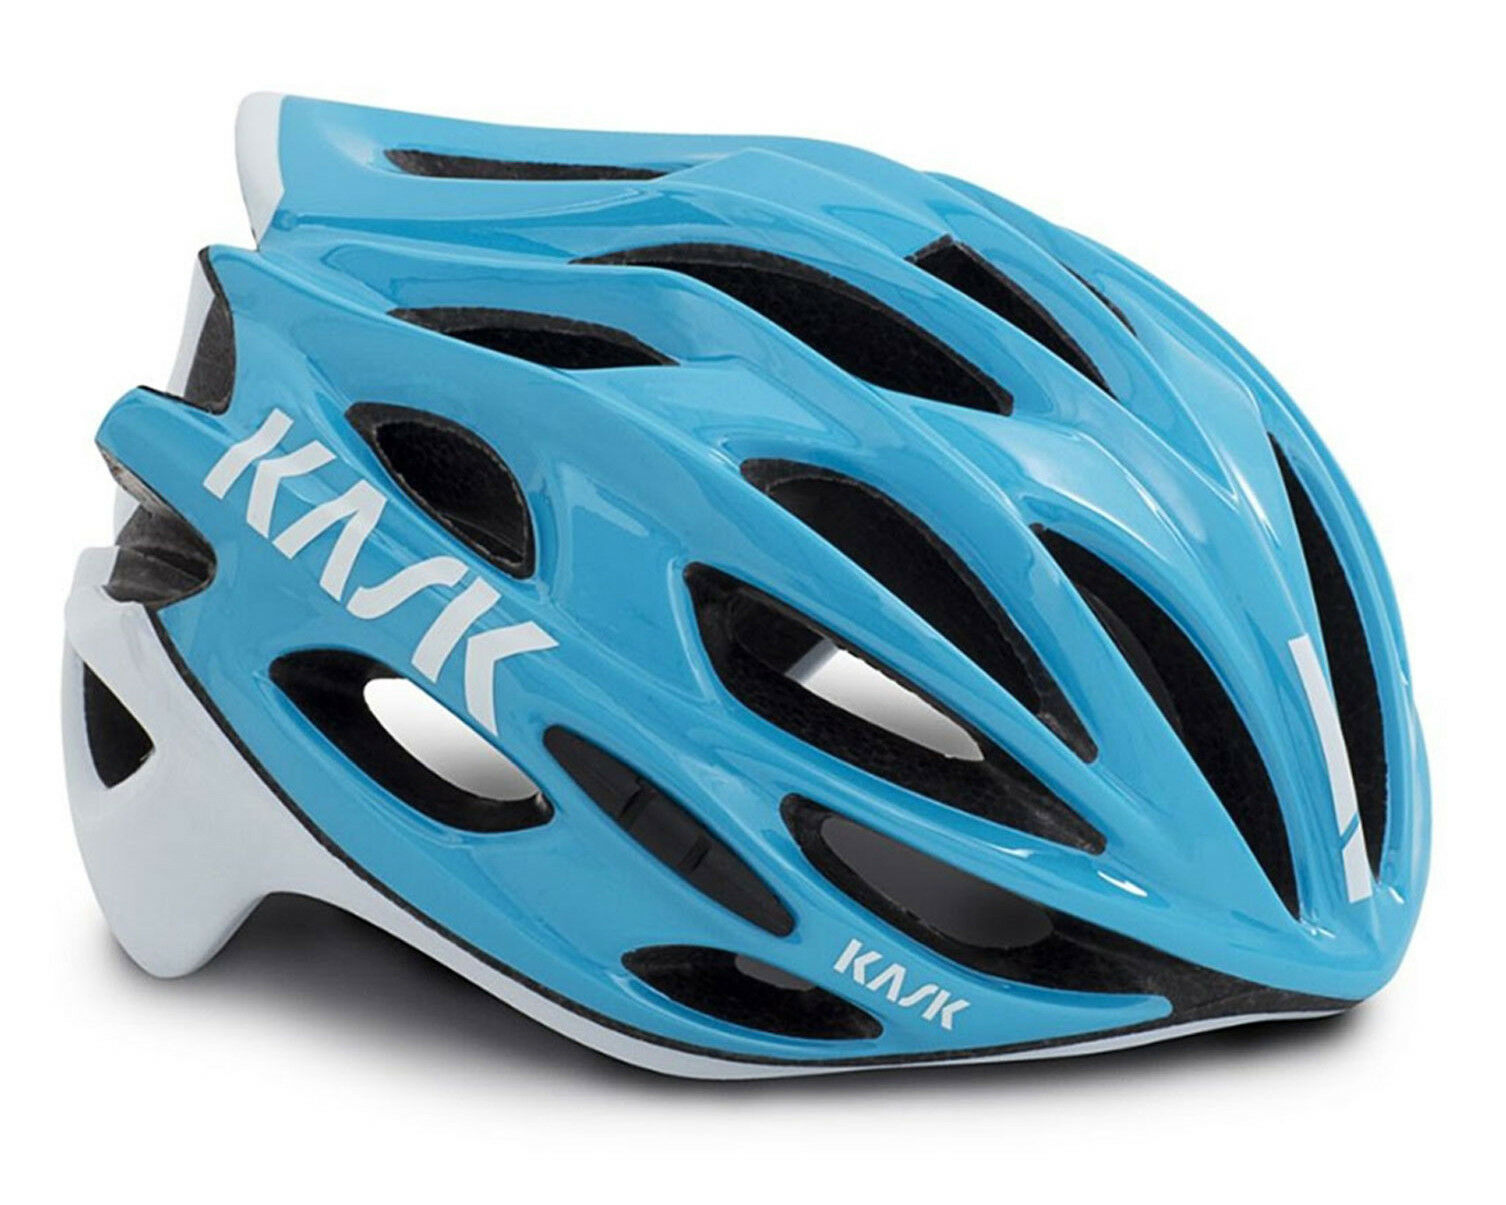 KASK MOJITO X Road Cycling Helmet - Light blå  vit [S 48 -56.M 52 -58.L 59 -62cm]